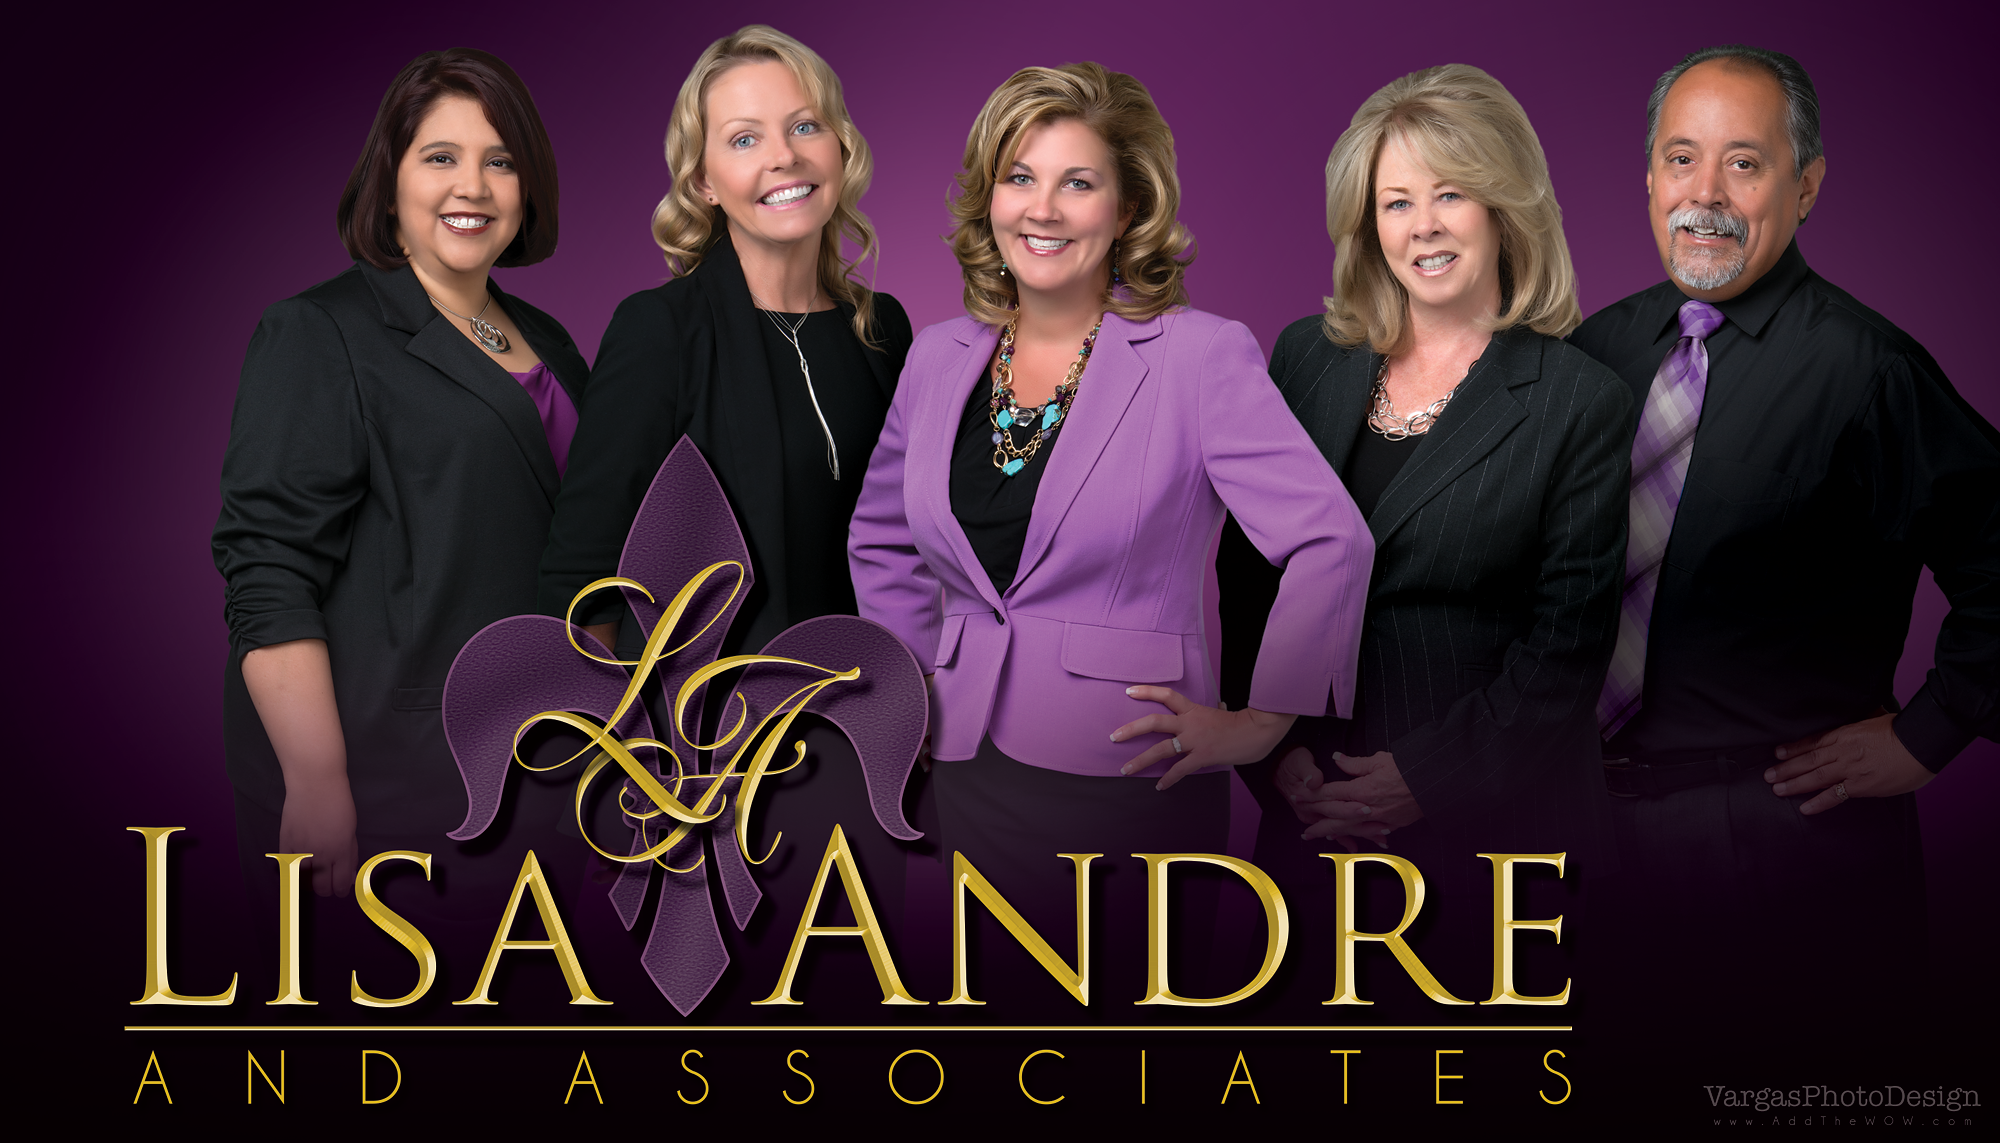 Lisa-Andre-and-Associates-Realtor-Team-Branding.png